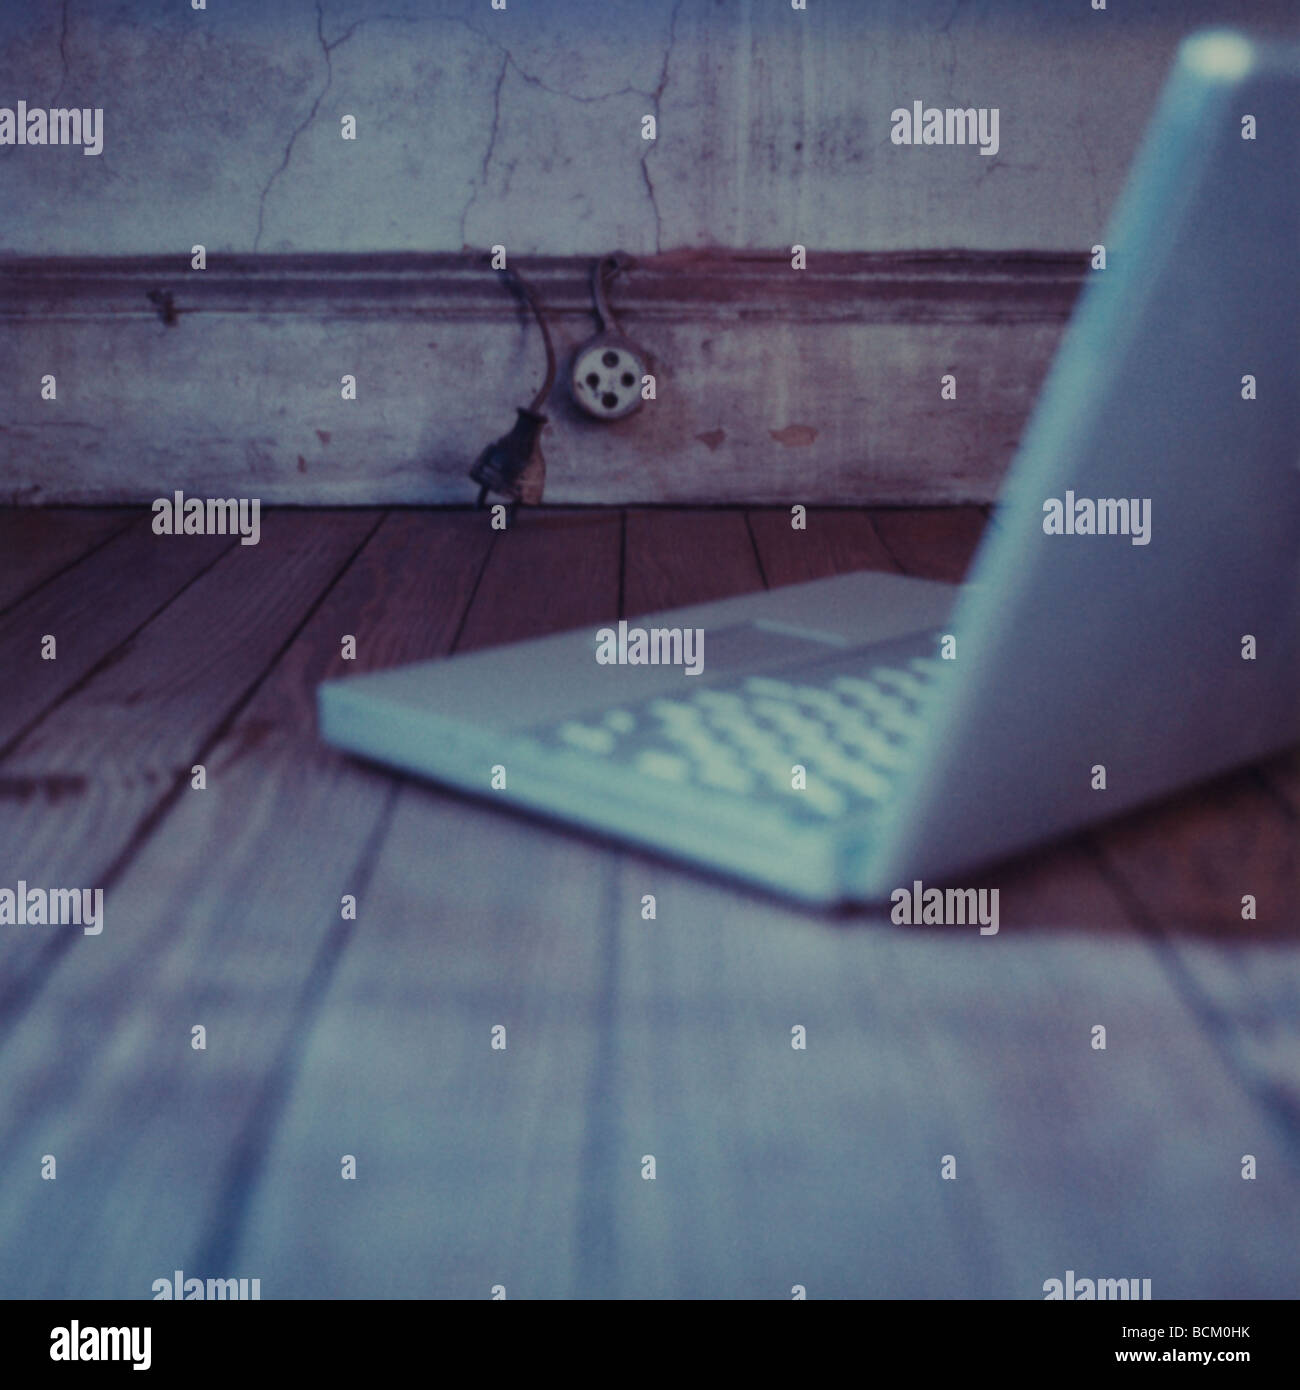 Laptop on hardwood floor - Stock Image